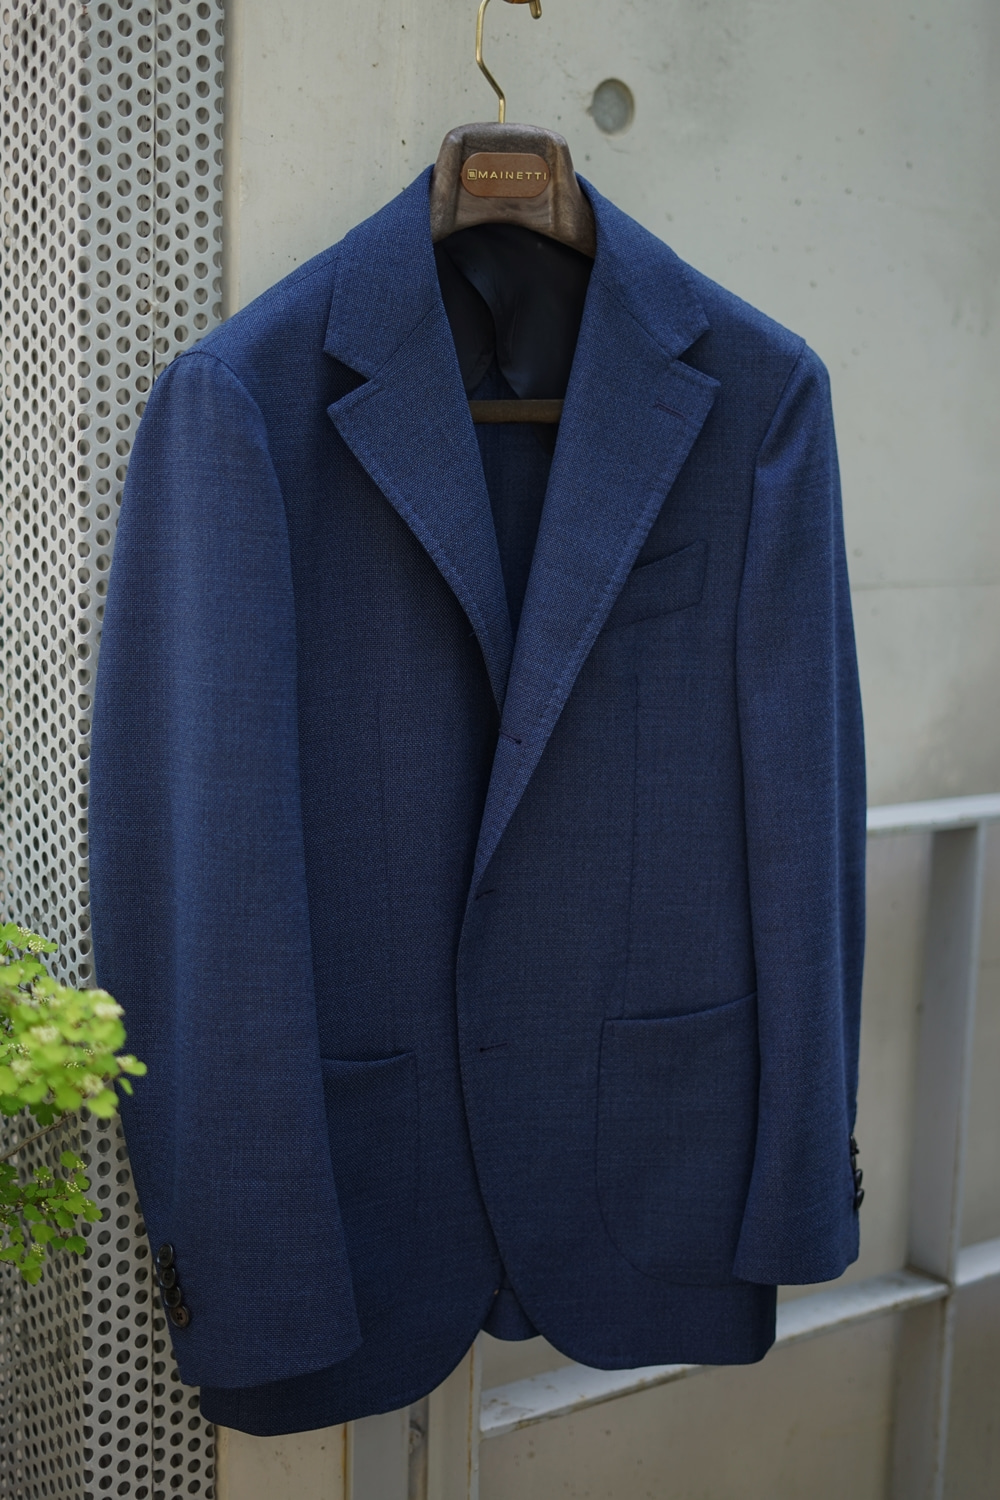 navy blue wool jacketCOMPLETO(꼼플레토)